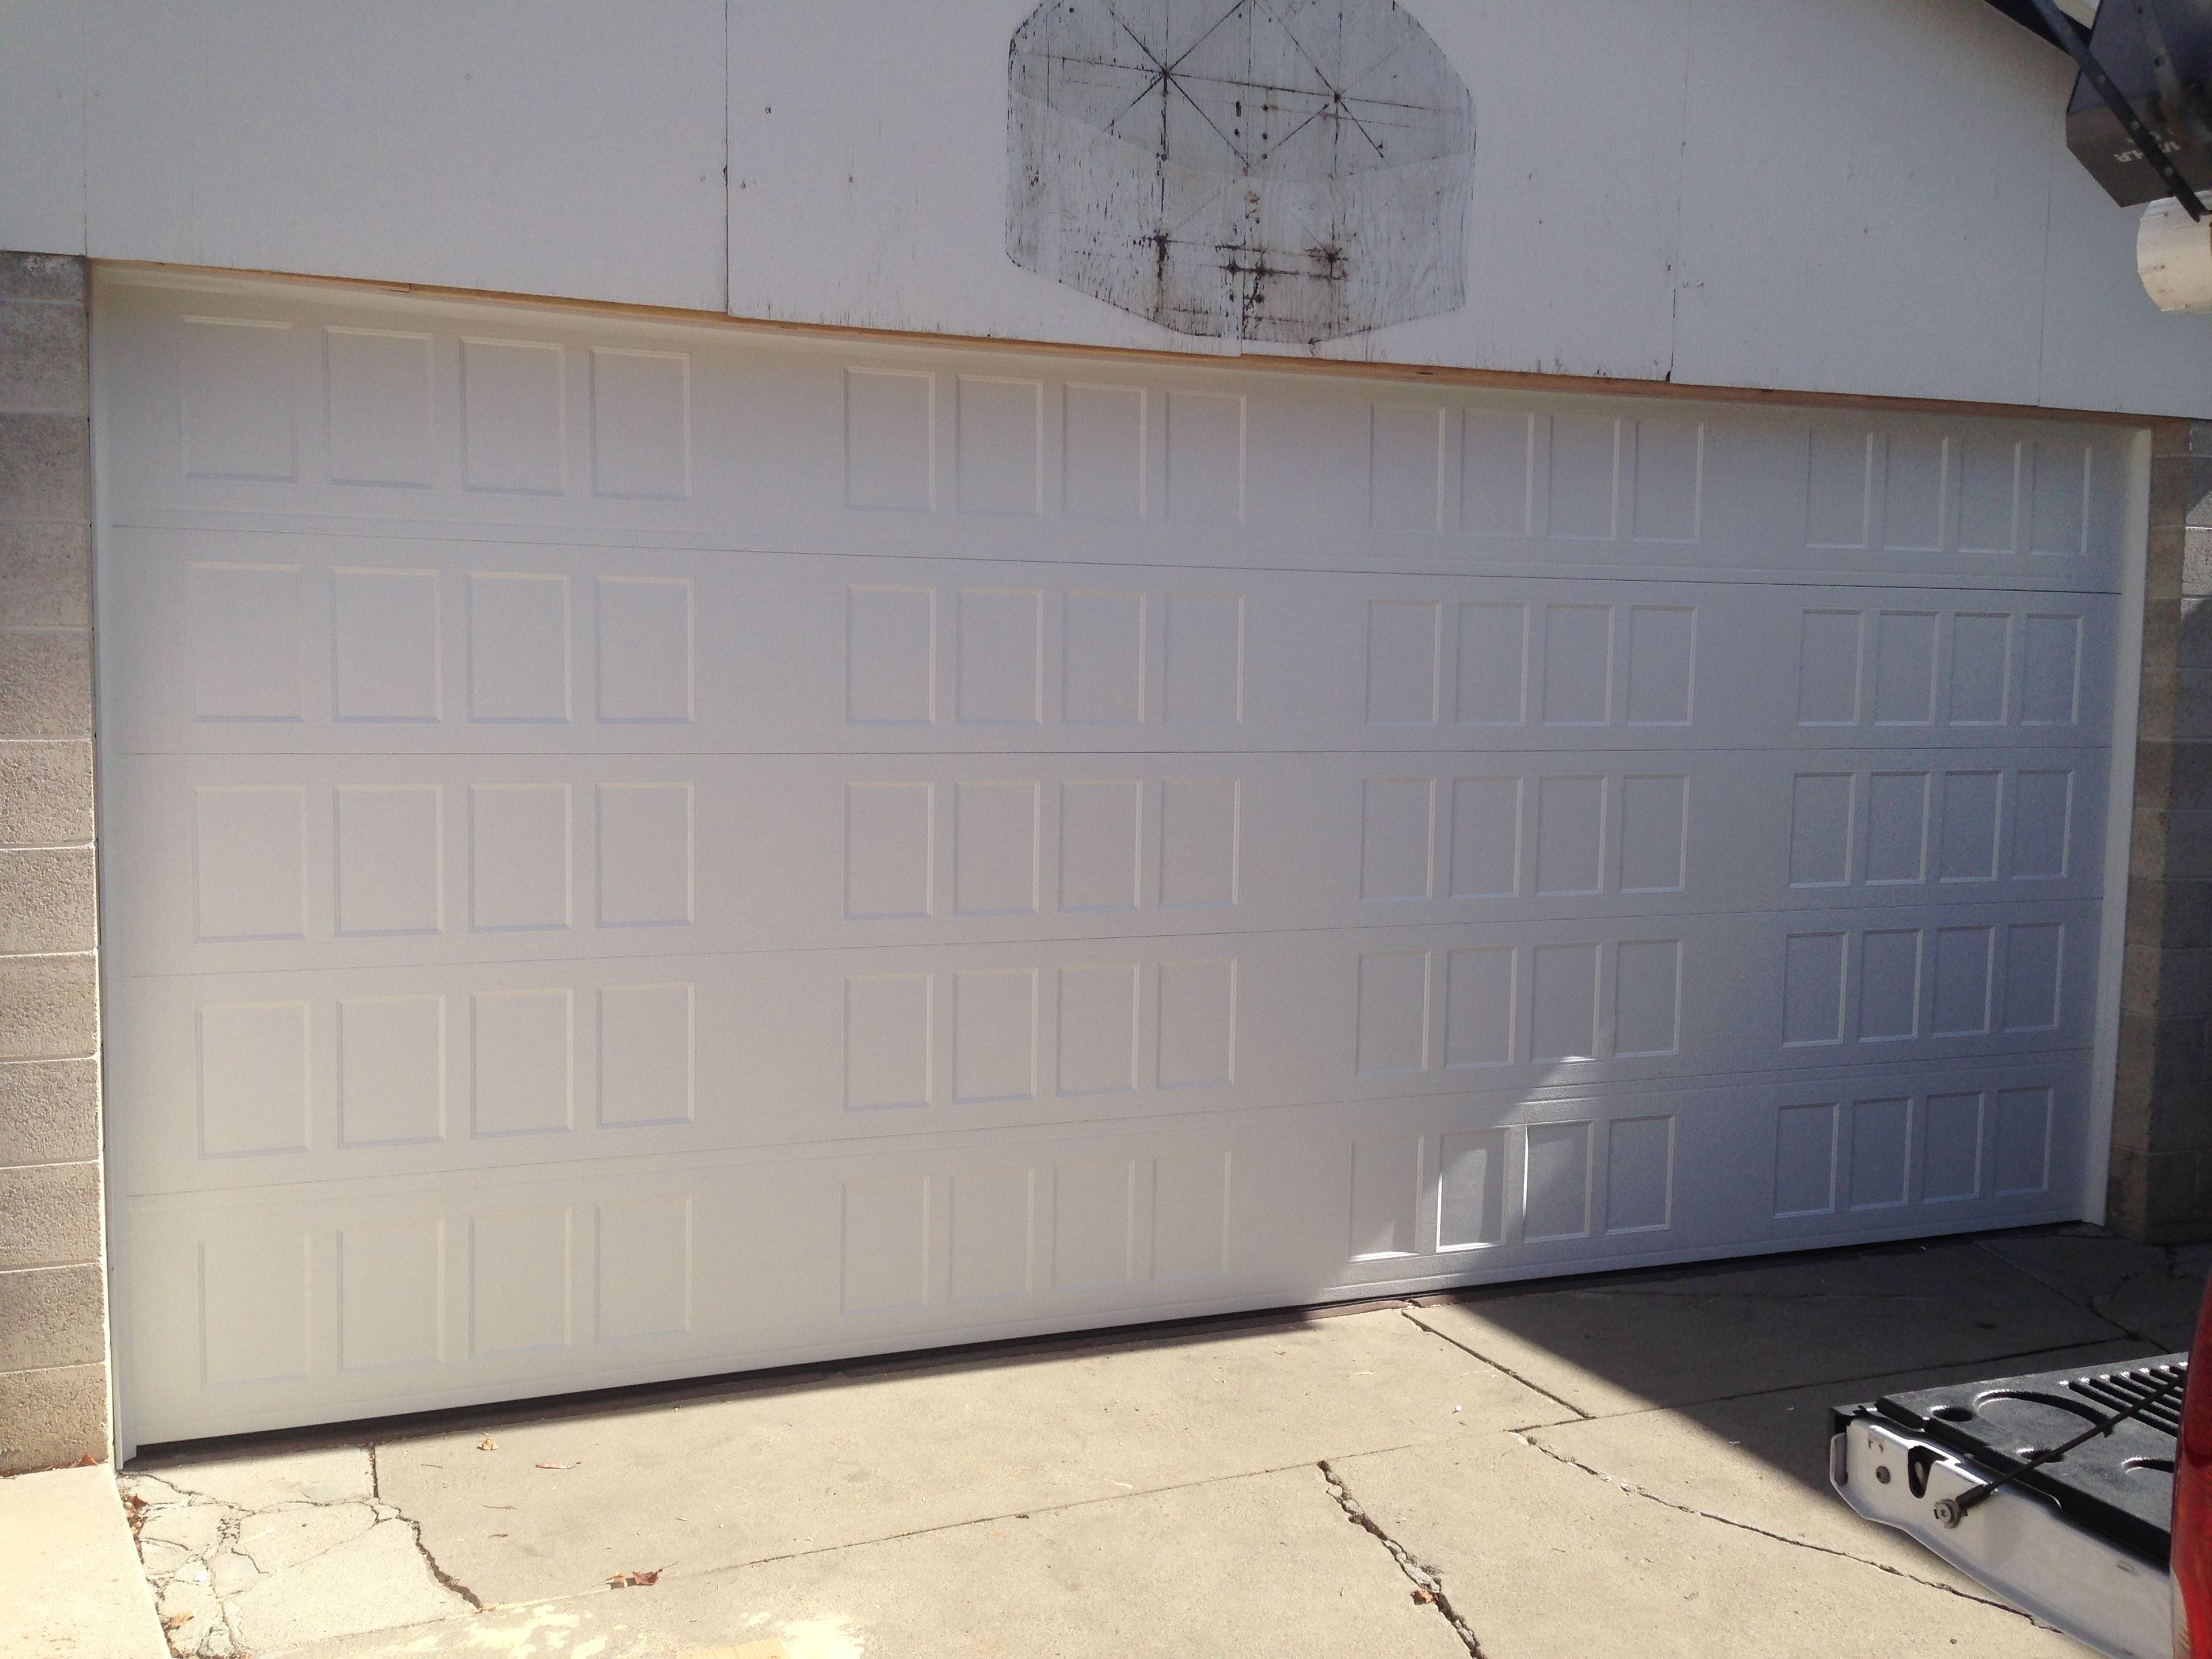 2448 #866E45 Custom Garage & Door Gallery A Plus Garage Doors image Salt Lake City Garage Doors 36833264